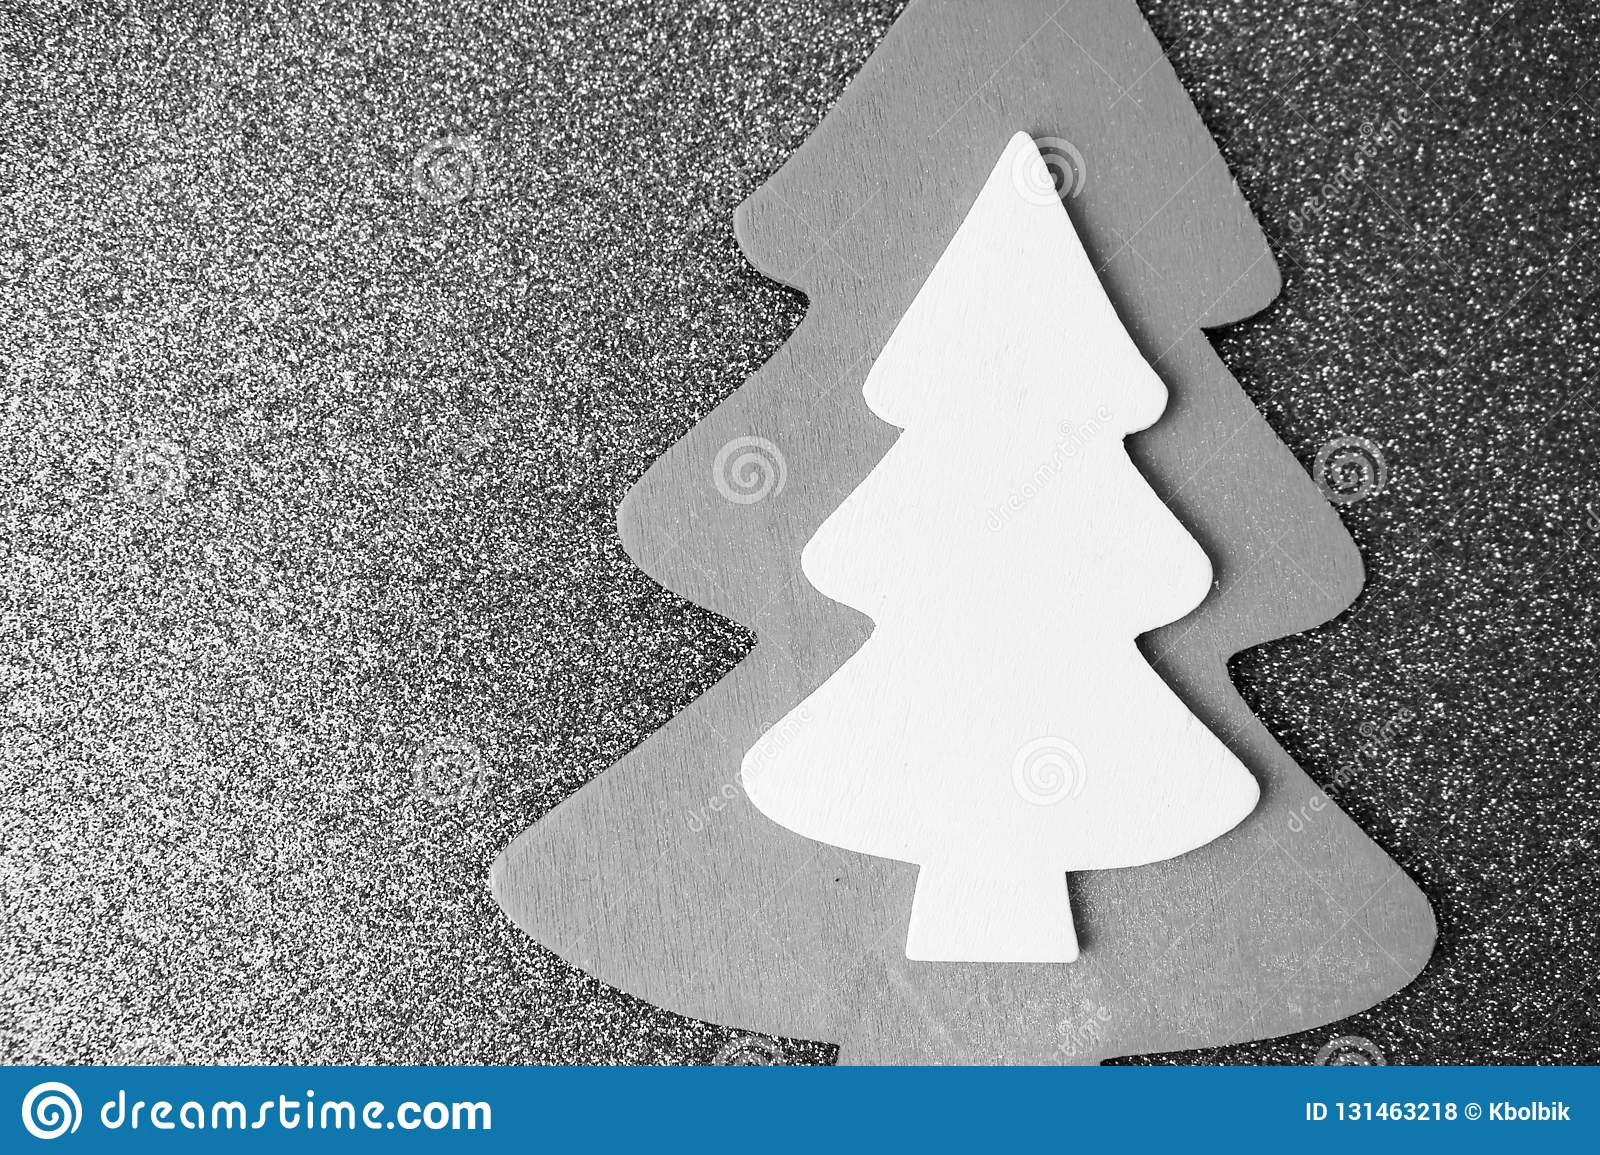 Festive Christmas Christmas winter happy beautiful black and white background with a small toy wooden homemade cute Christmas tree